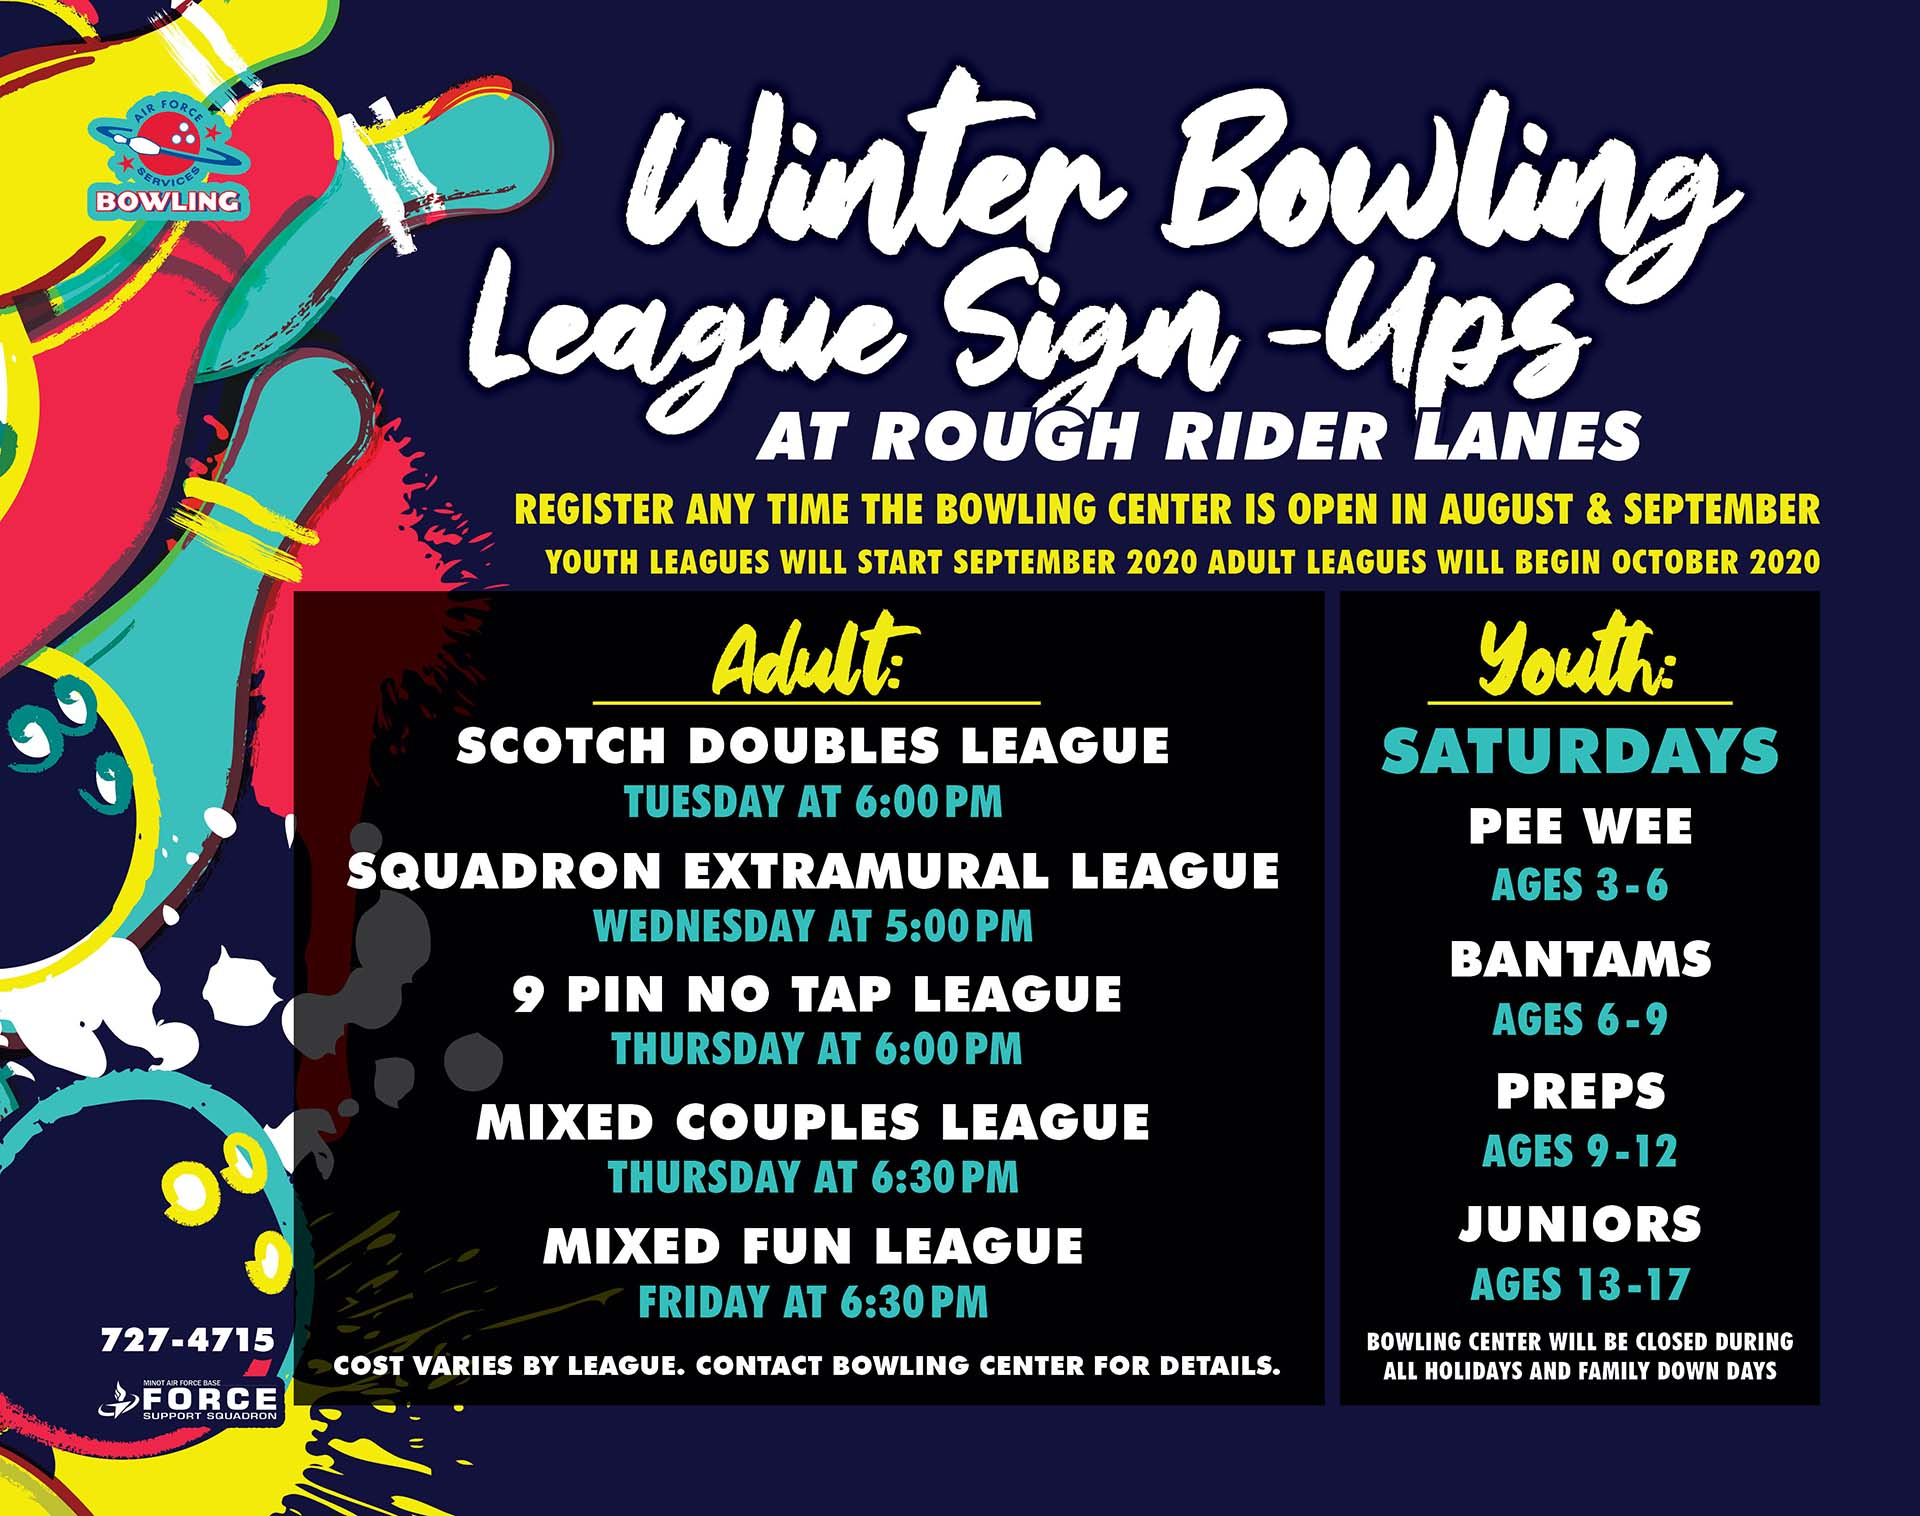 Winter Bowling League Registration Continues